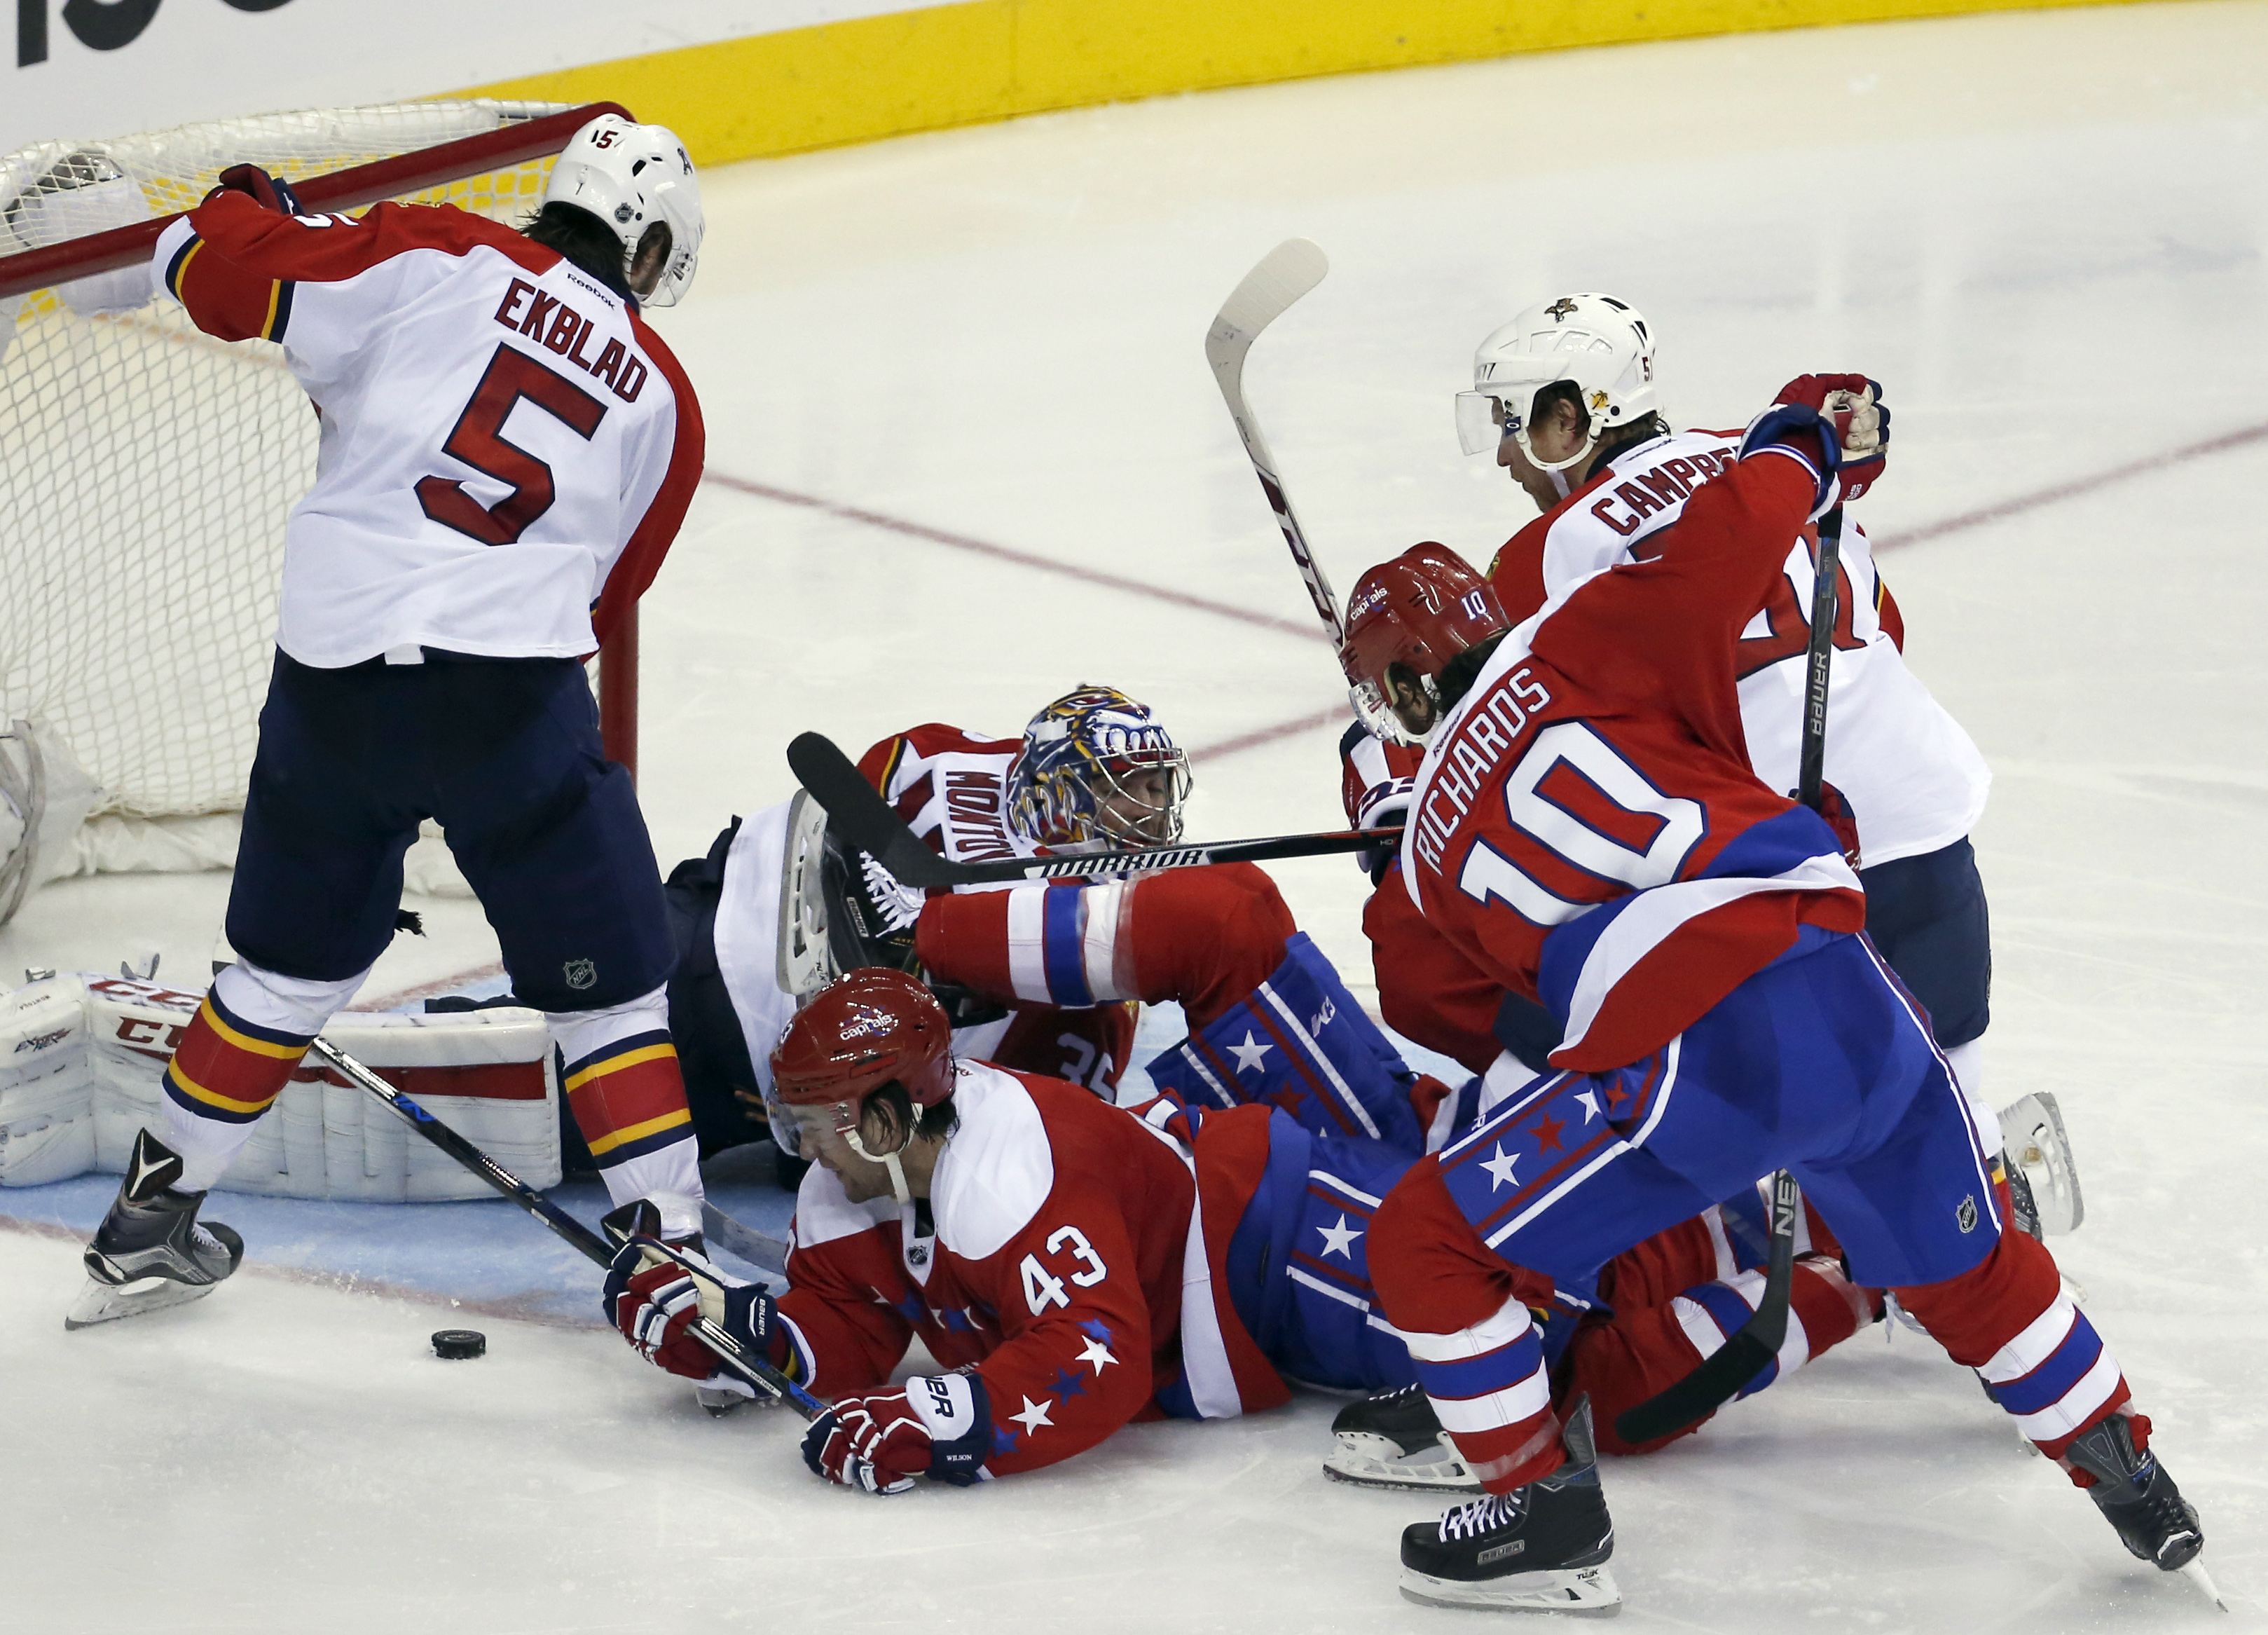 Washington Capitals right wing Tom Wilson (43) tries to play the puck lying on the ice with Florida Panthers defenseman Aaron Ekblad (5) and goalie Al Montoya (35) defending during the third period of an NHL hockey game, Tuesday, Feb. 2, 2016, in Washingt